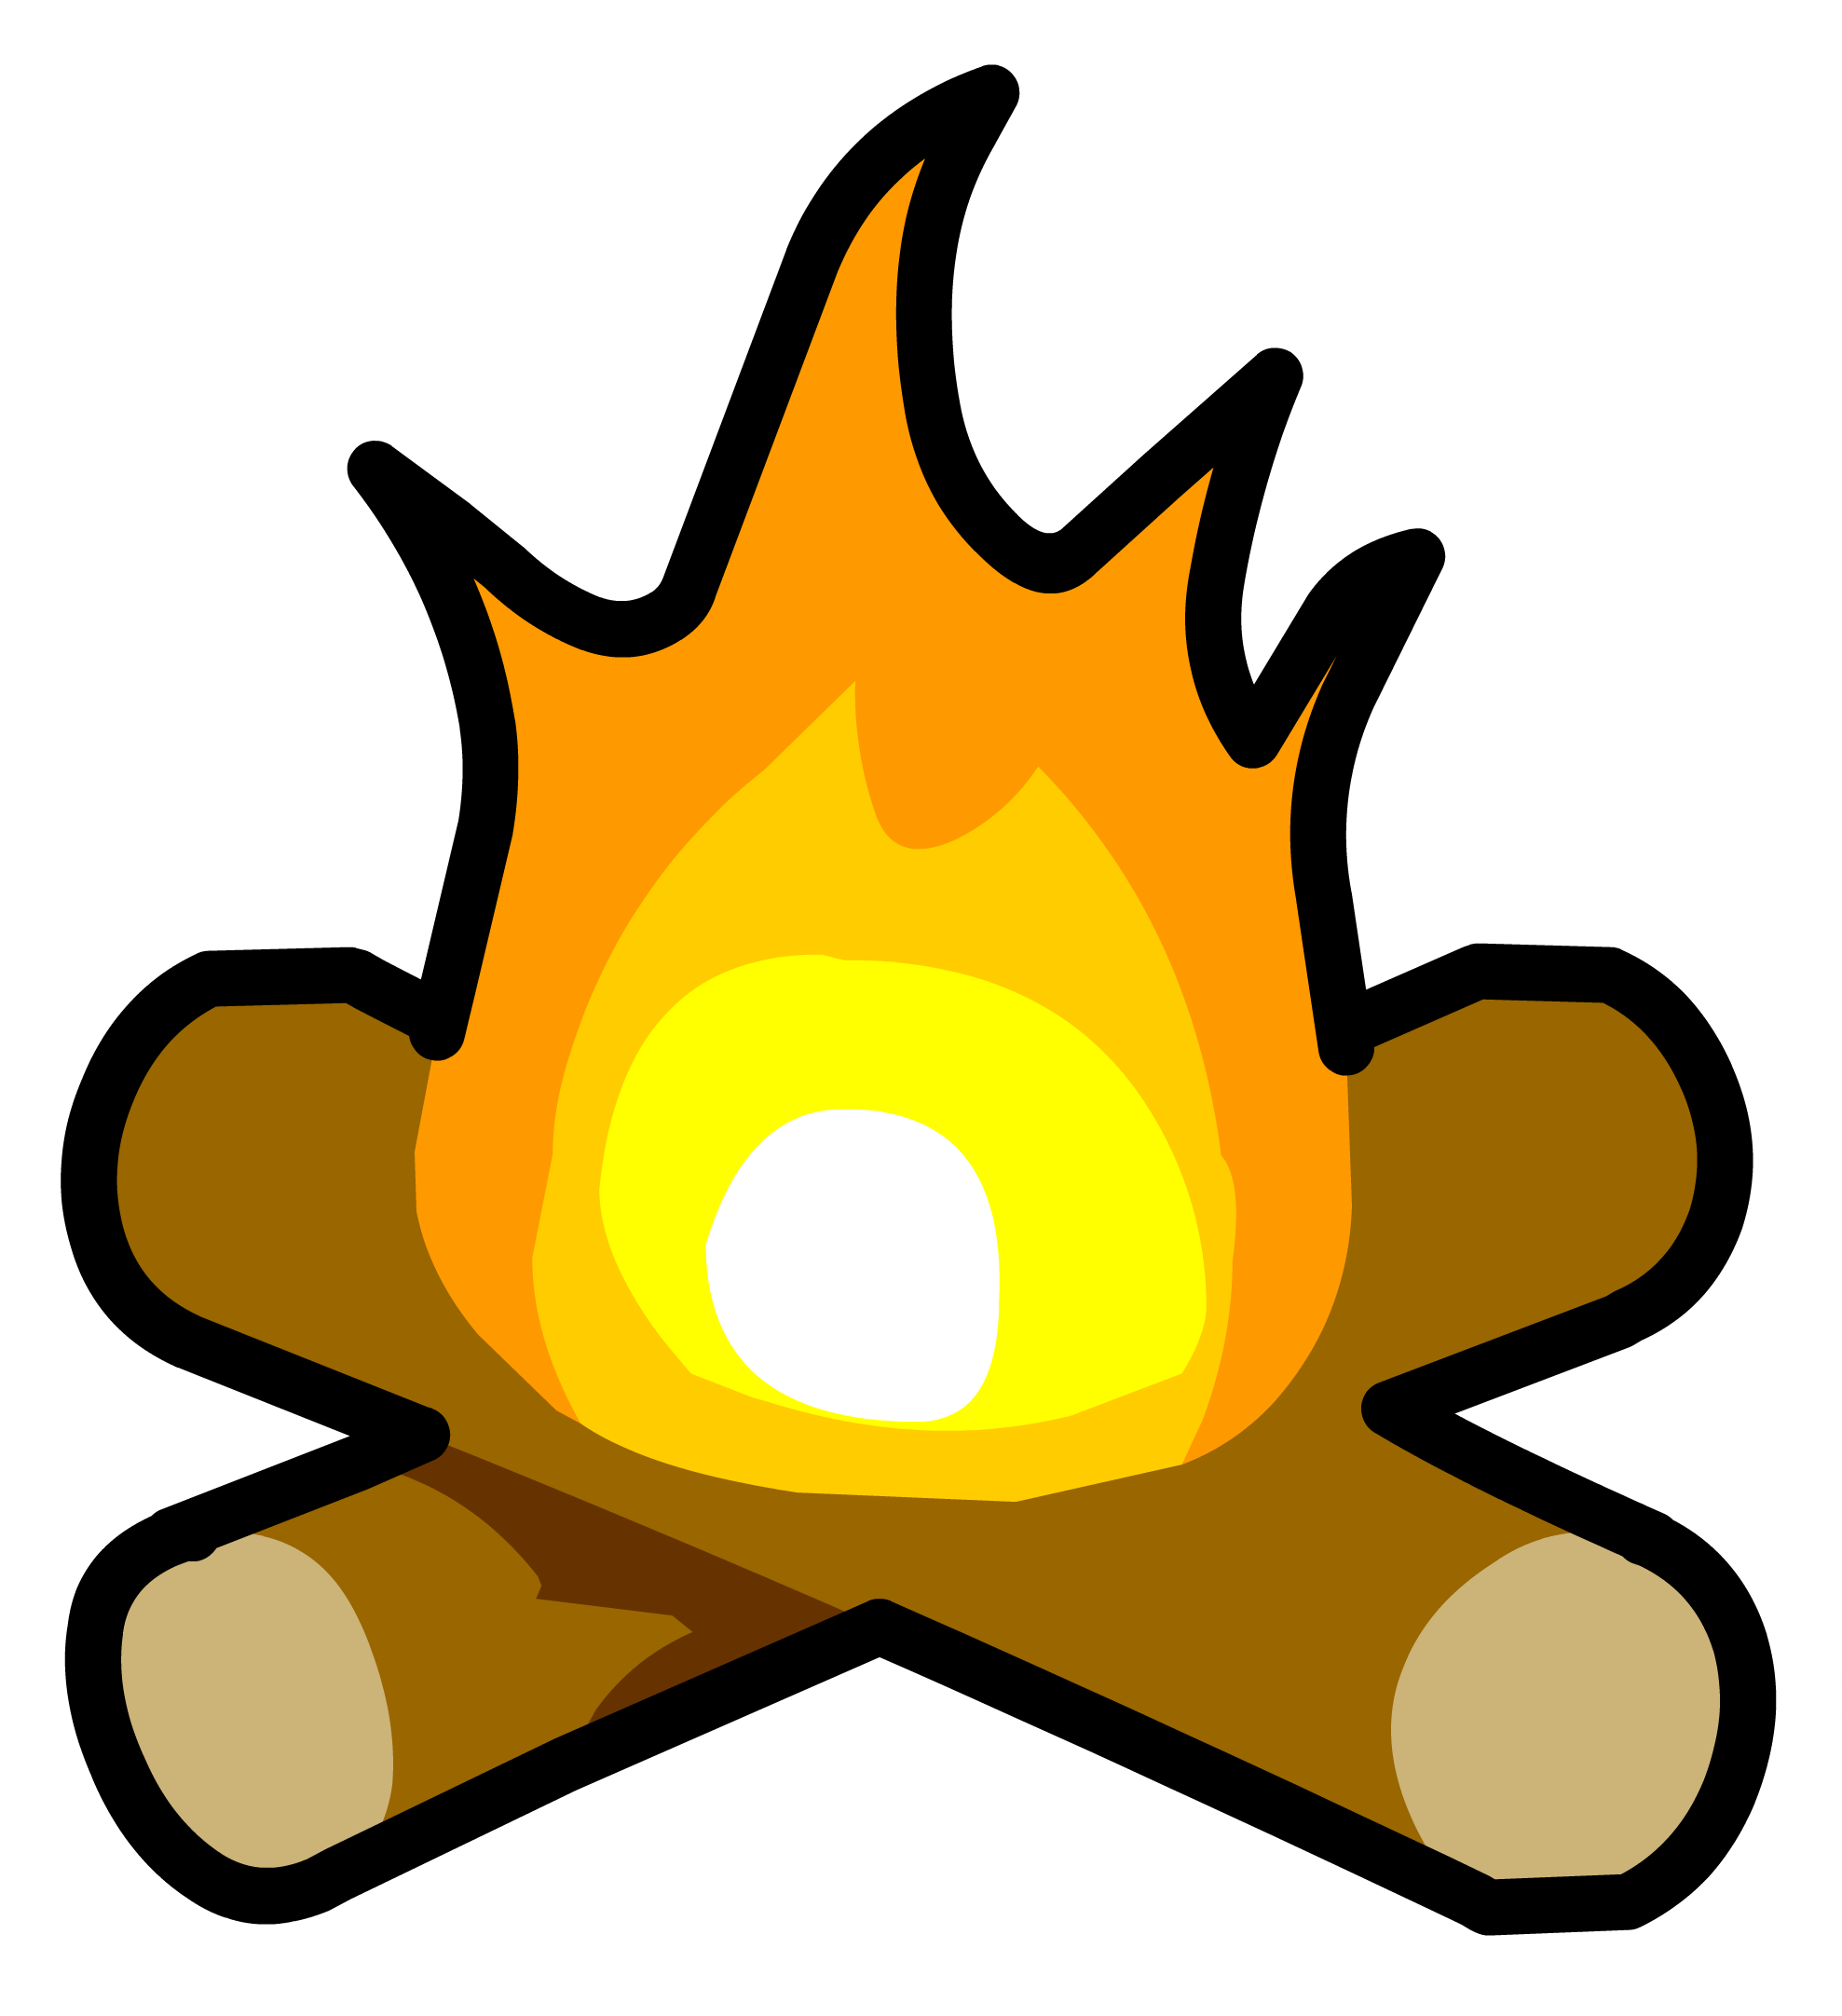 Bonfire pin | Club Penguin Wiki | FANDOM powered by Wikia